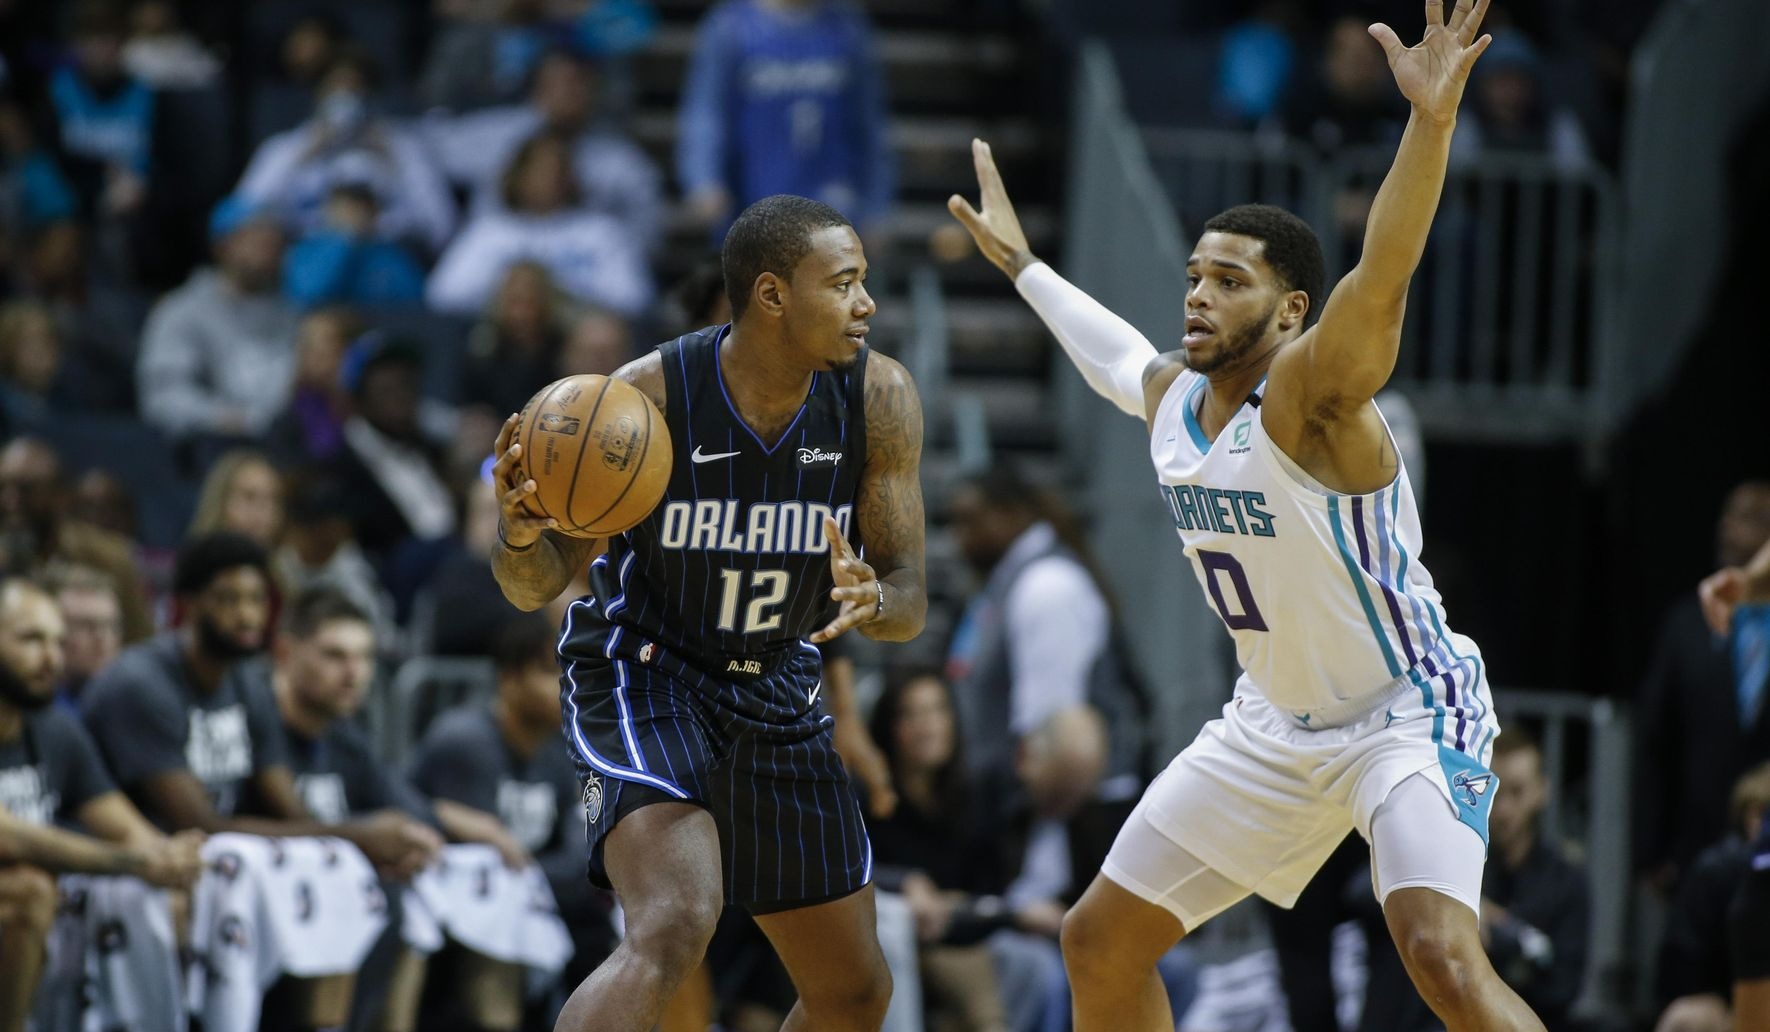 Magic_hornets_basketball_82407_c0-192-4591-2868_s1770x1032